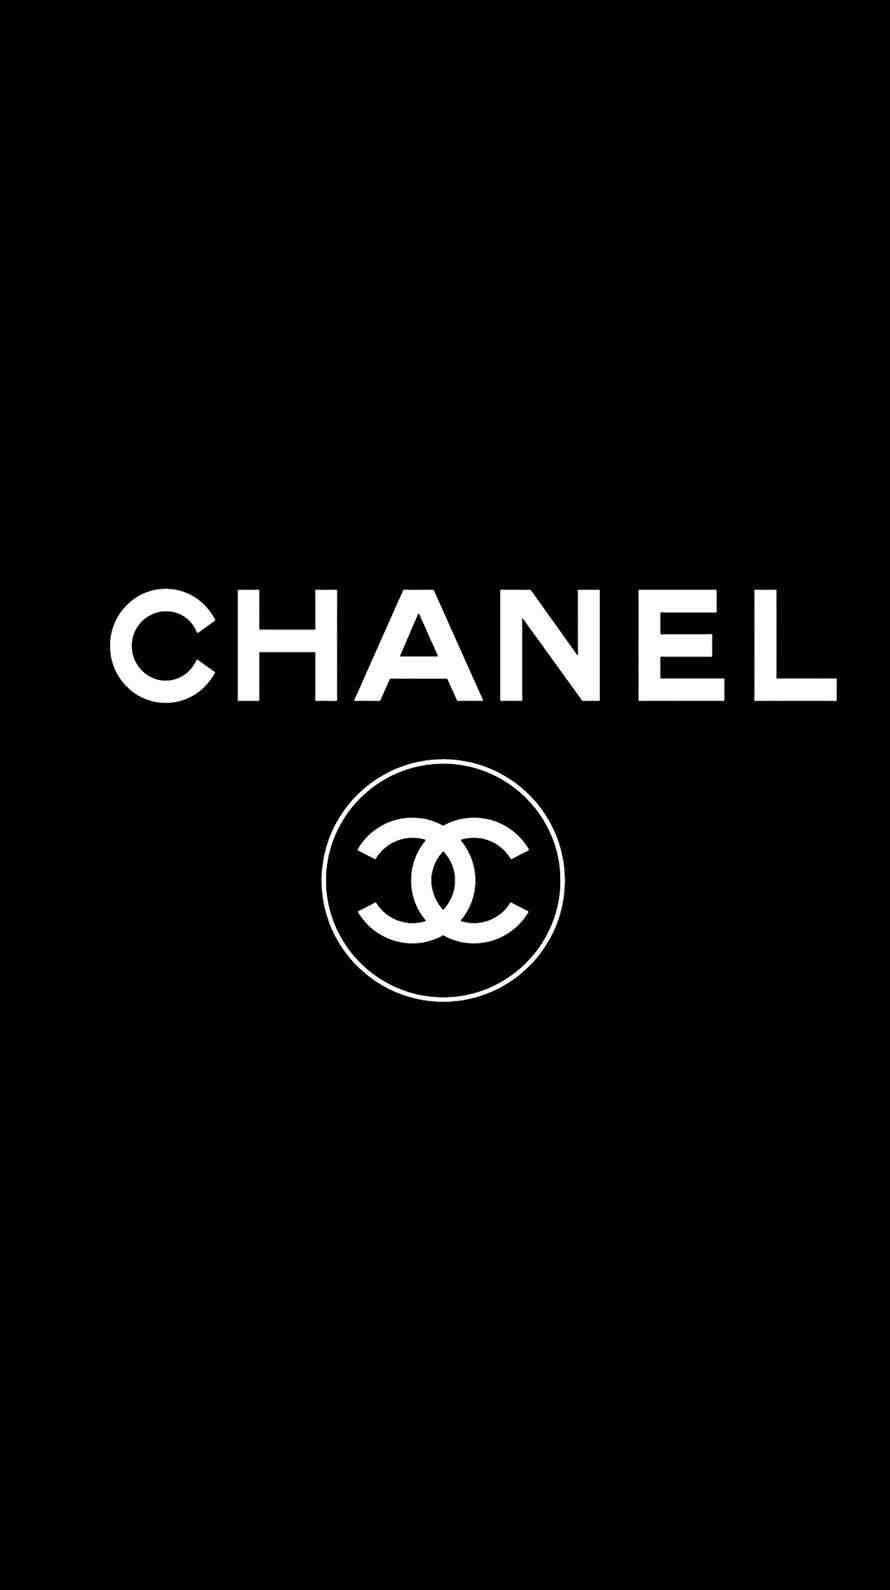 Chanel Wallpaper Is a Great Way to Decorate Your Home